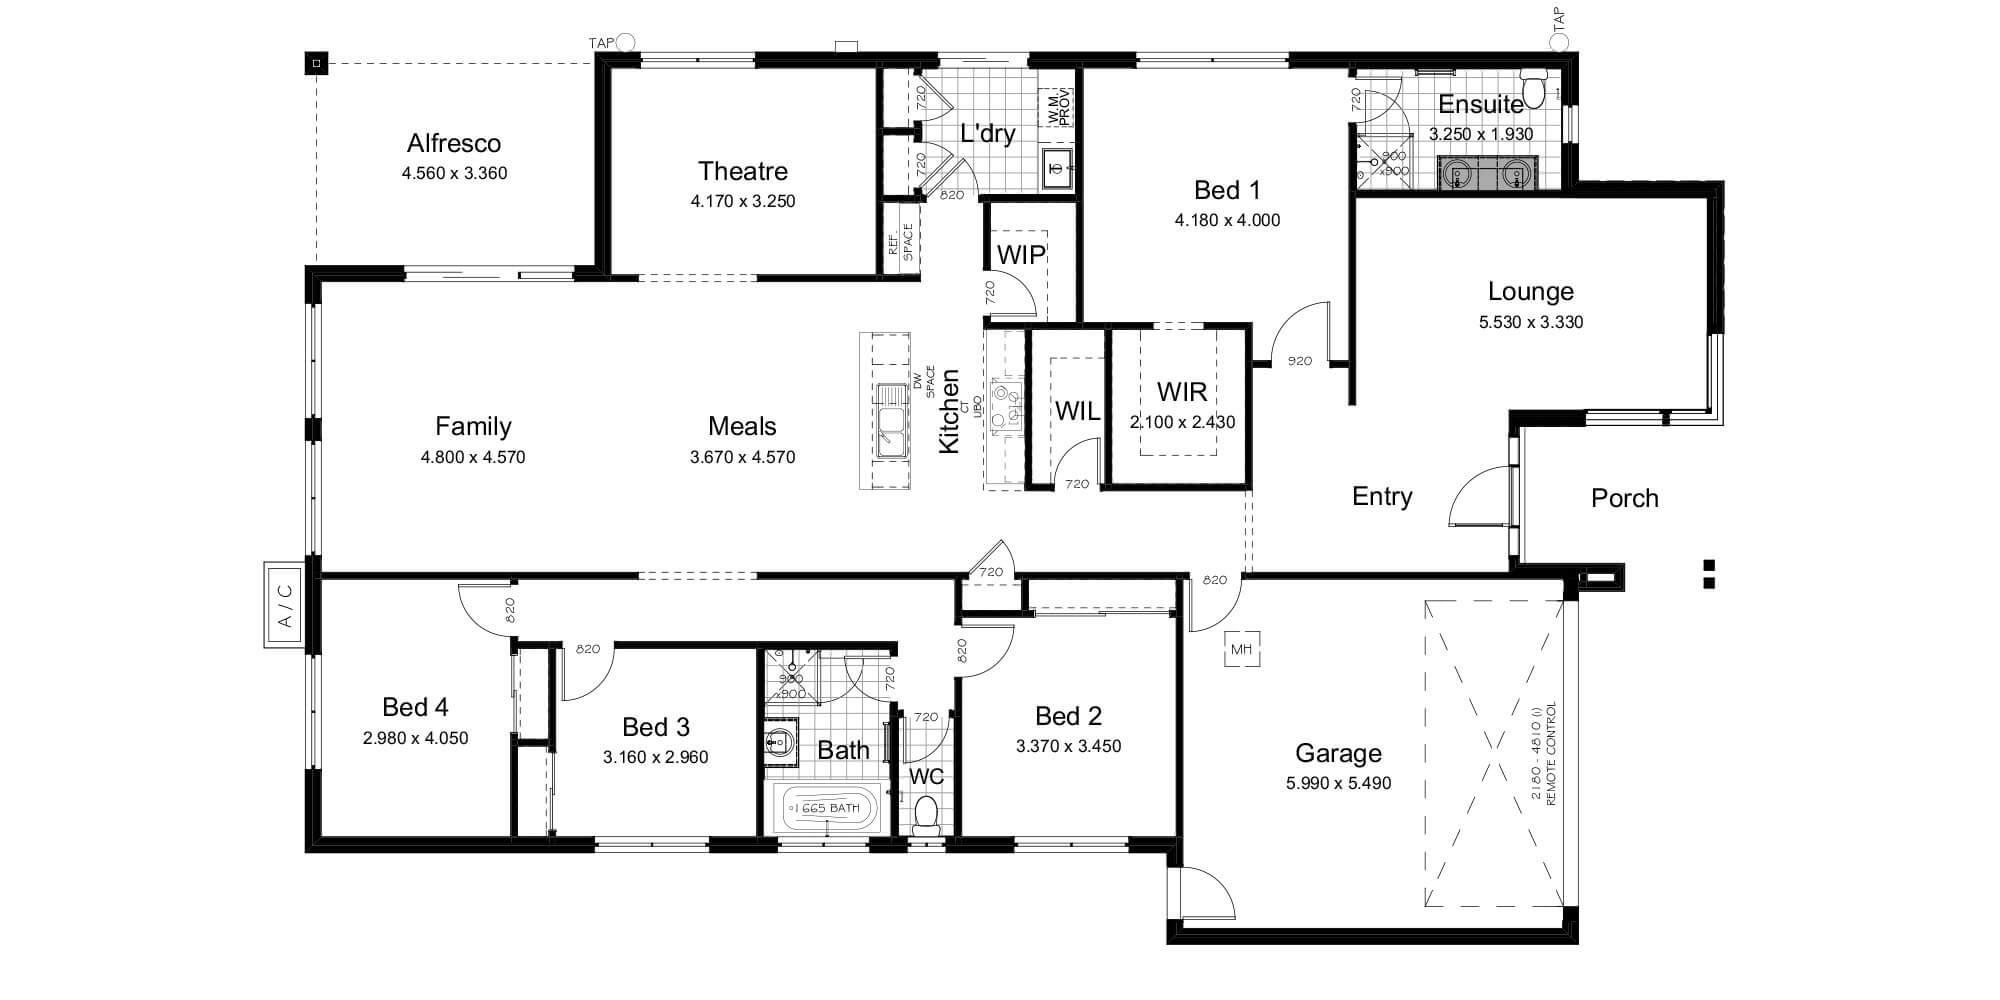 Lot 30 floorplan